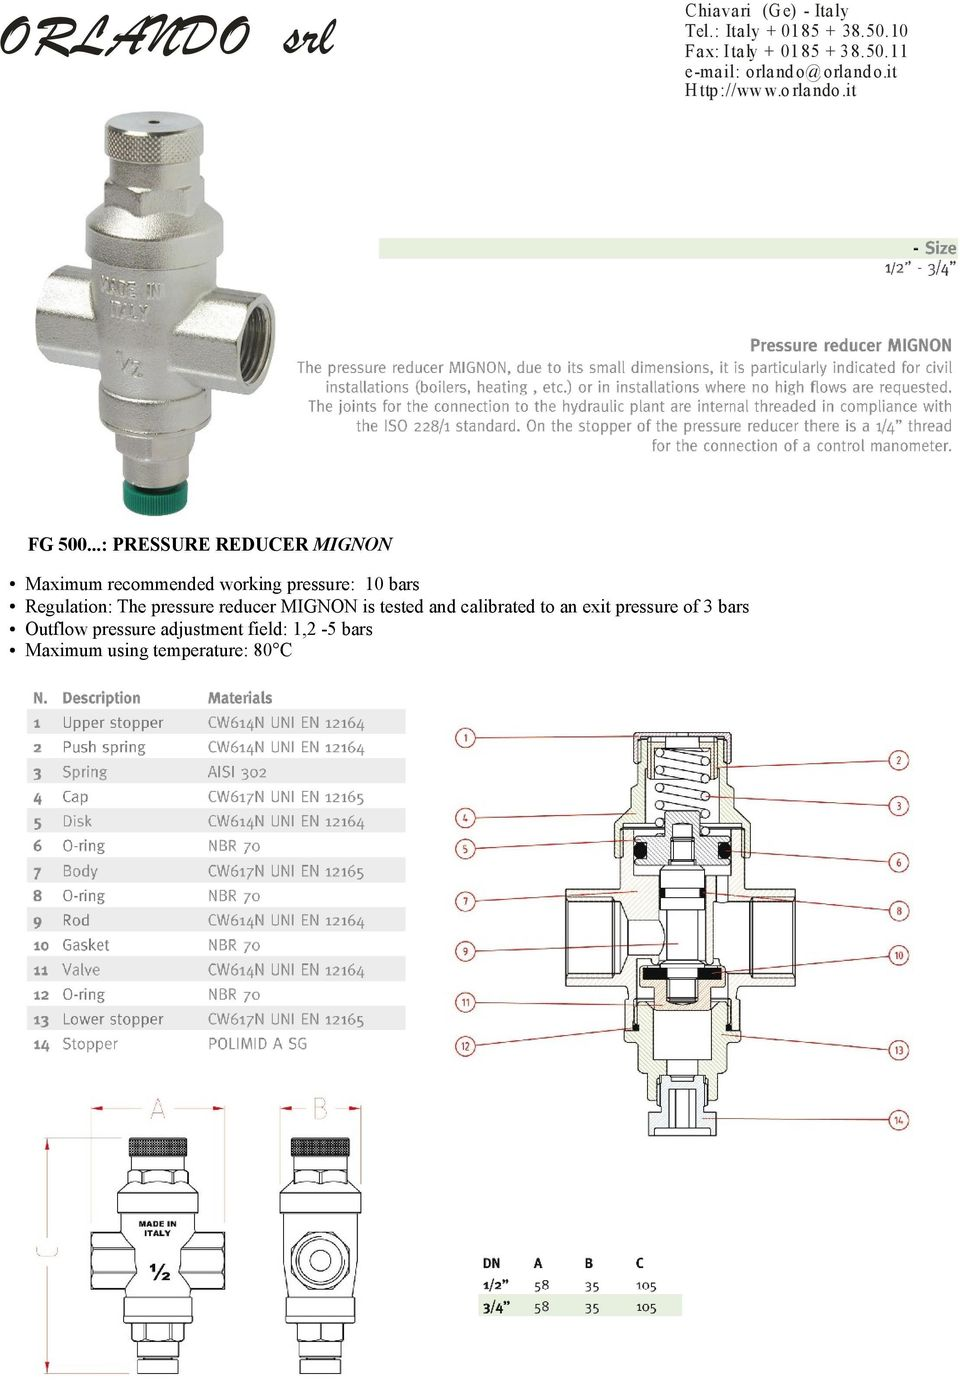 ..: PRESSURE REDUCER MIGNON Maximum recommended working pressure: 10 bars Regulation: The